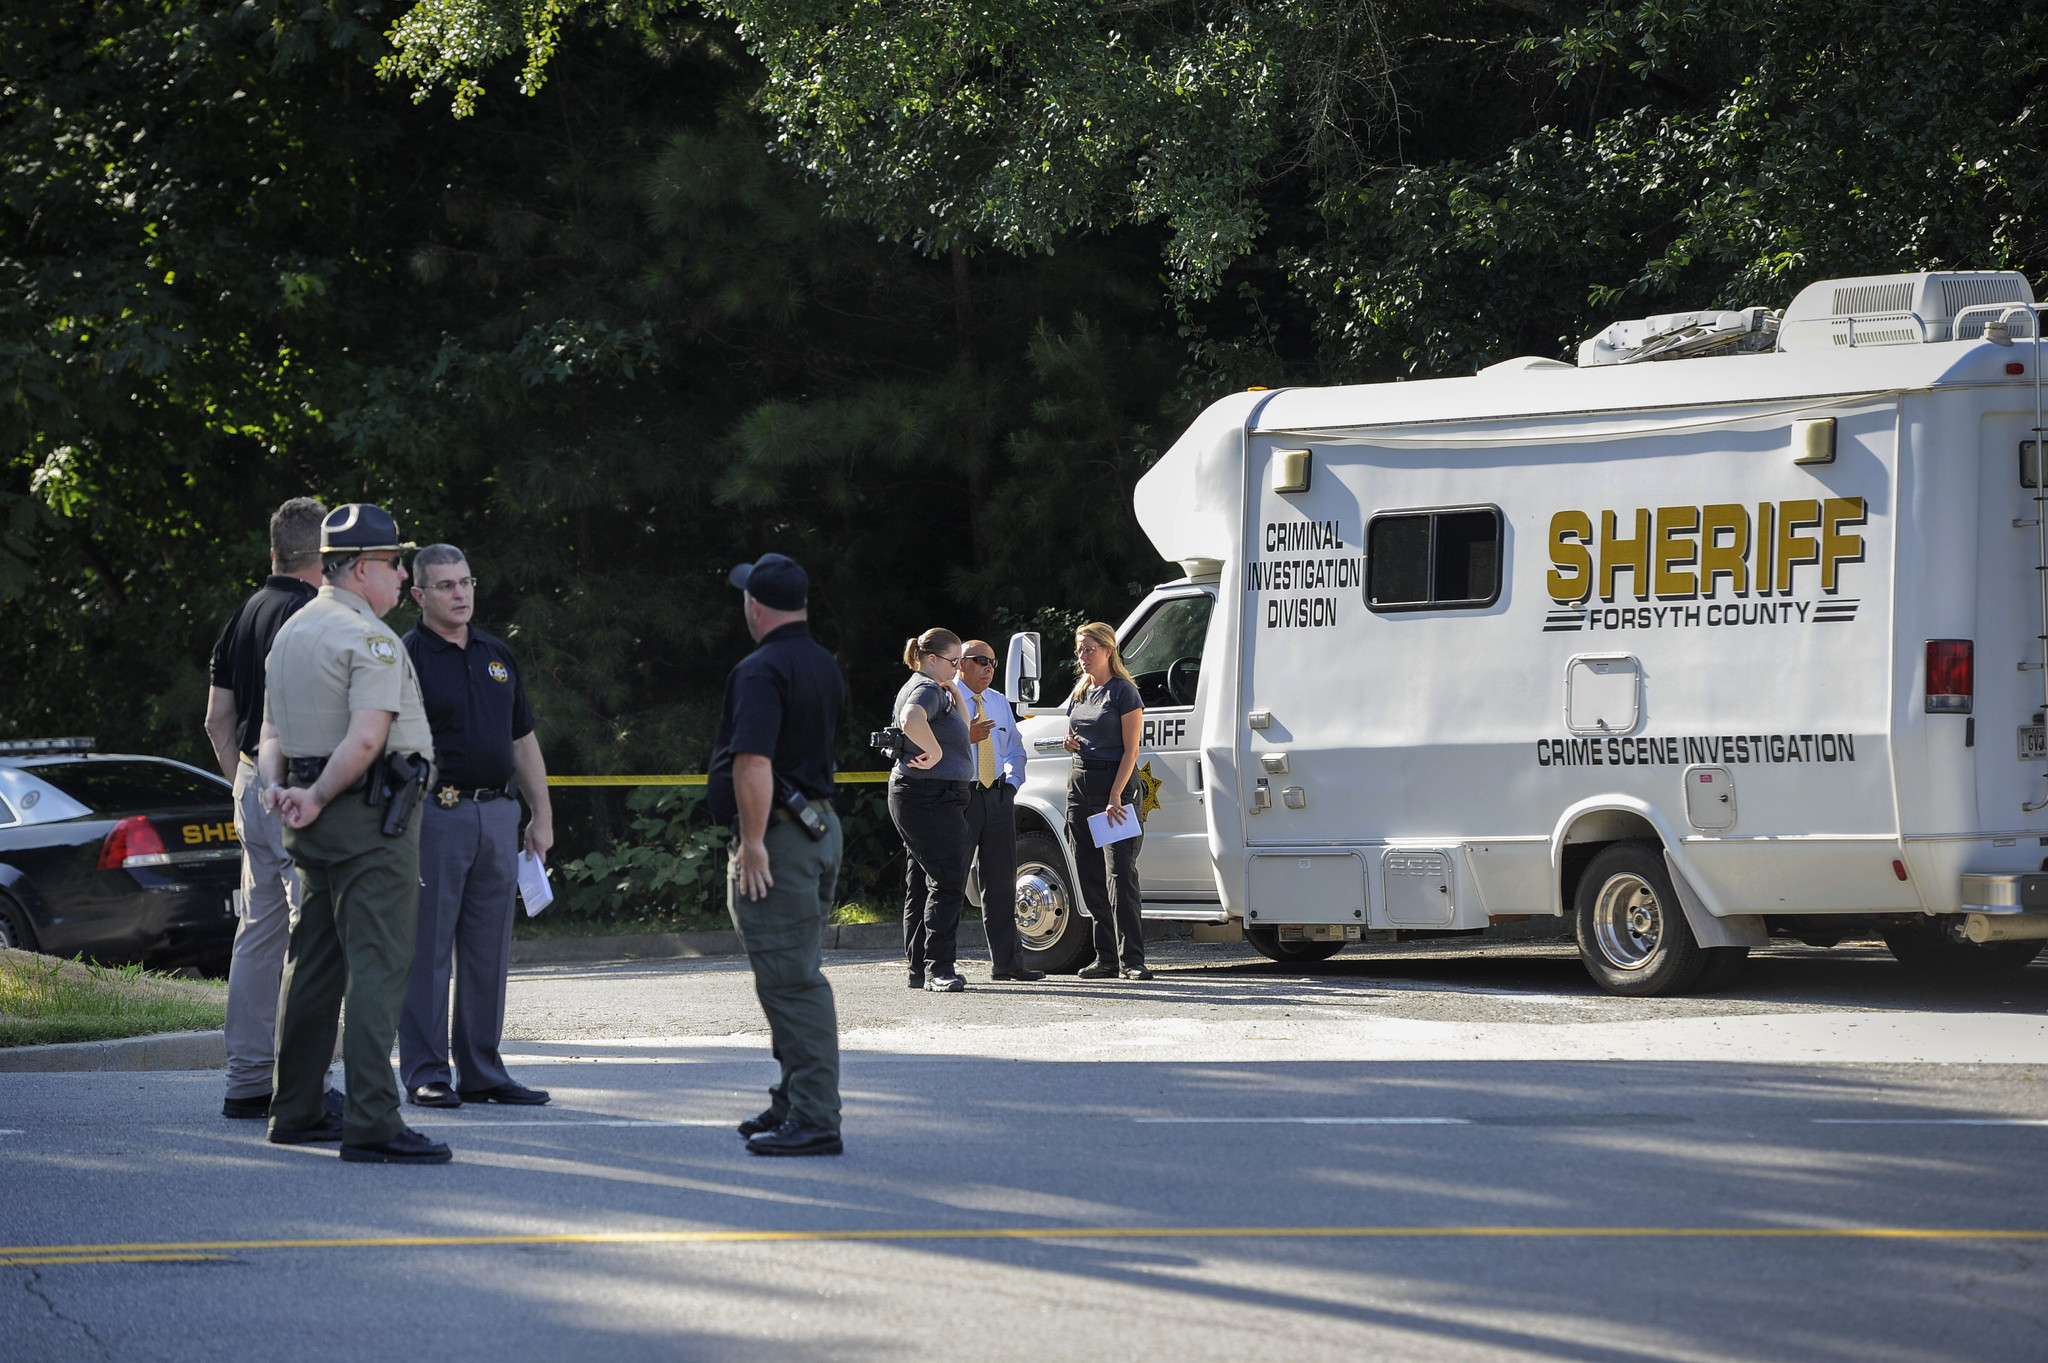 4 killed, including shooter and 2 children, in home in Atlanta suburb